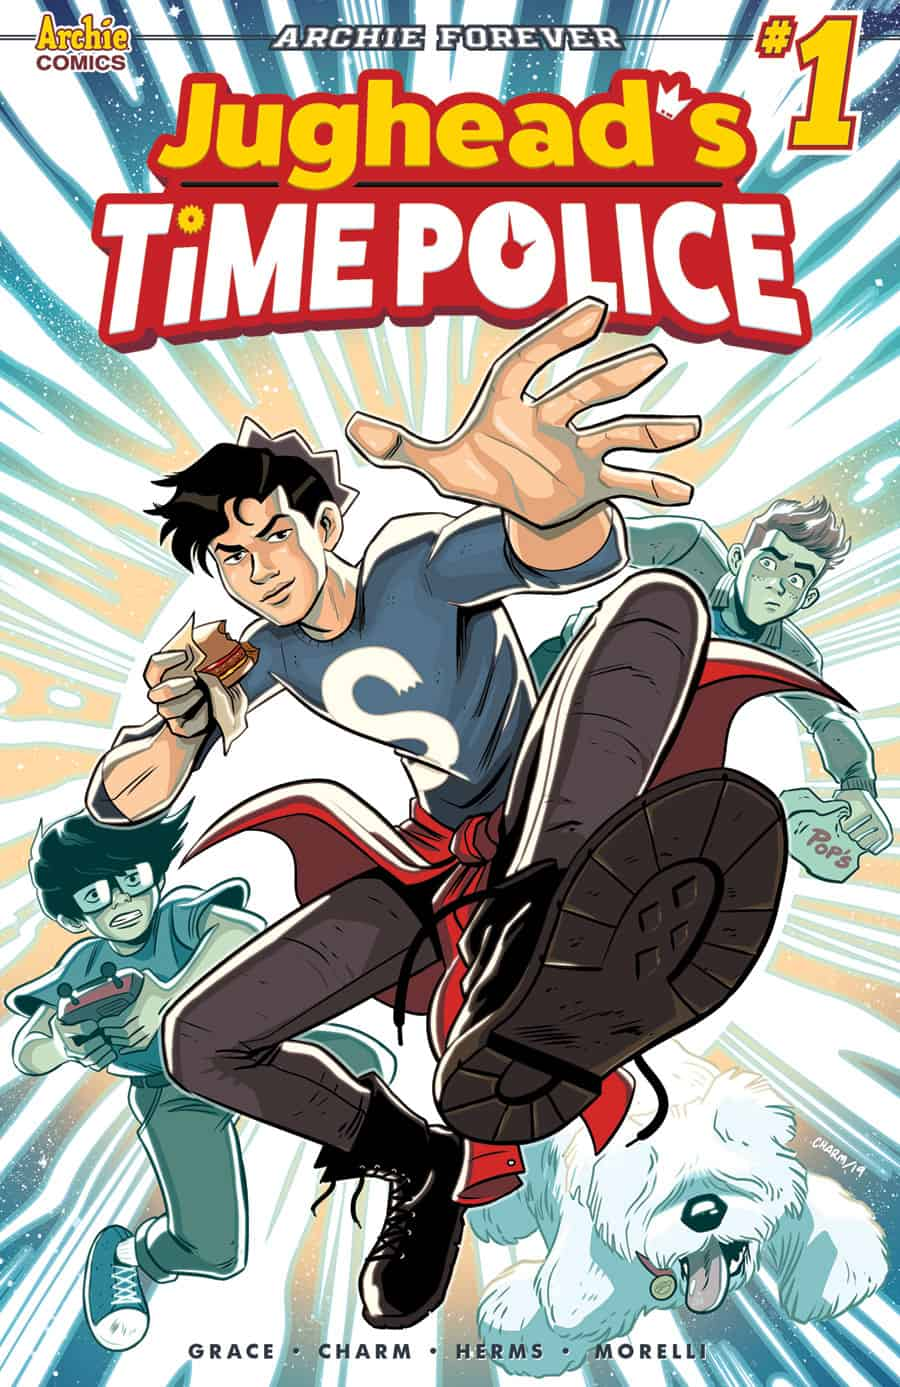 FIRST WATCH: JUGHEAD'S TIME POLICE Returns to the Future in June